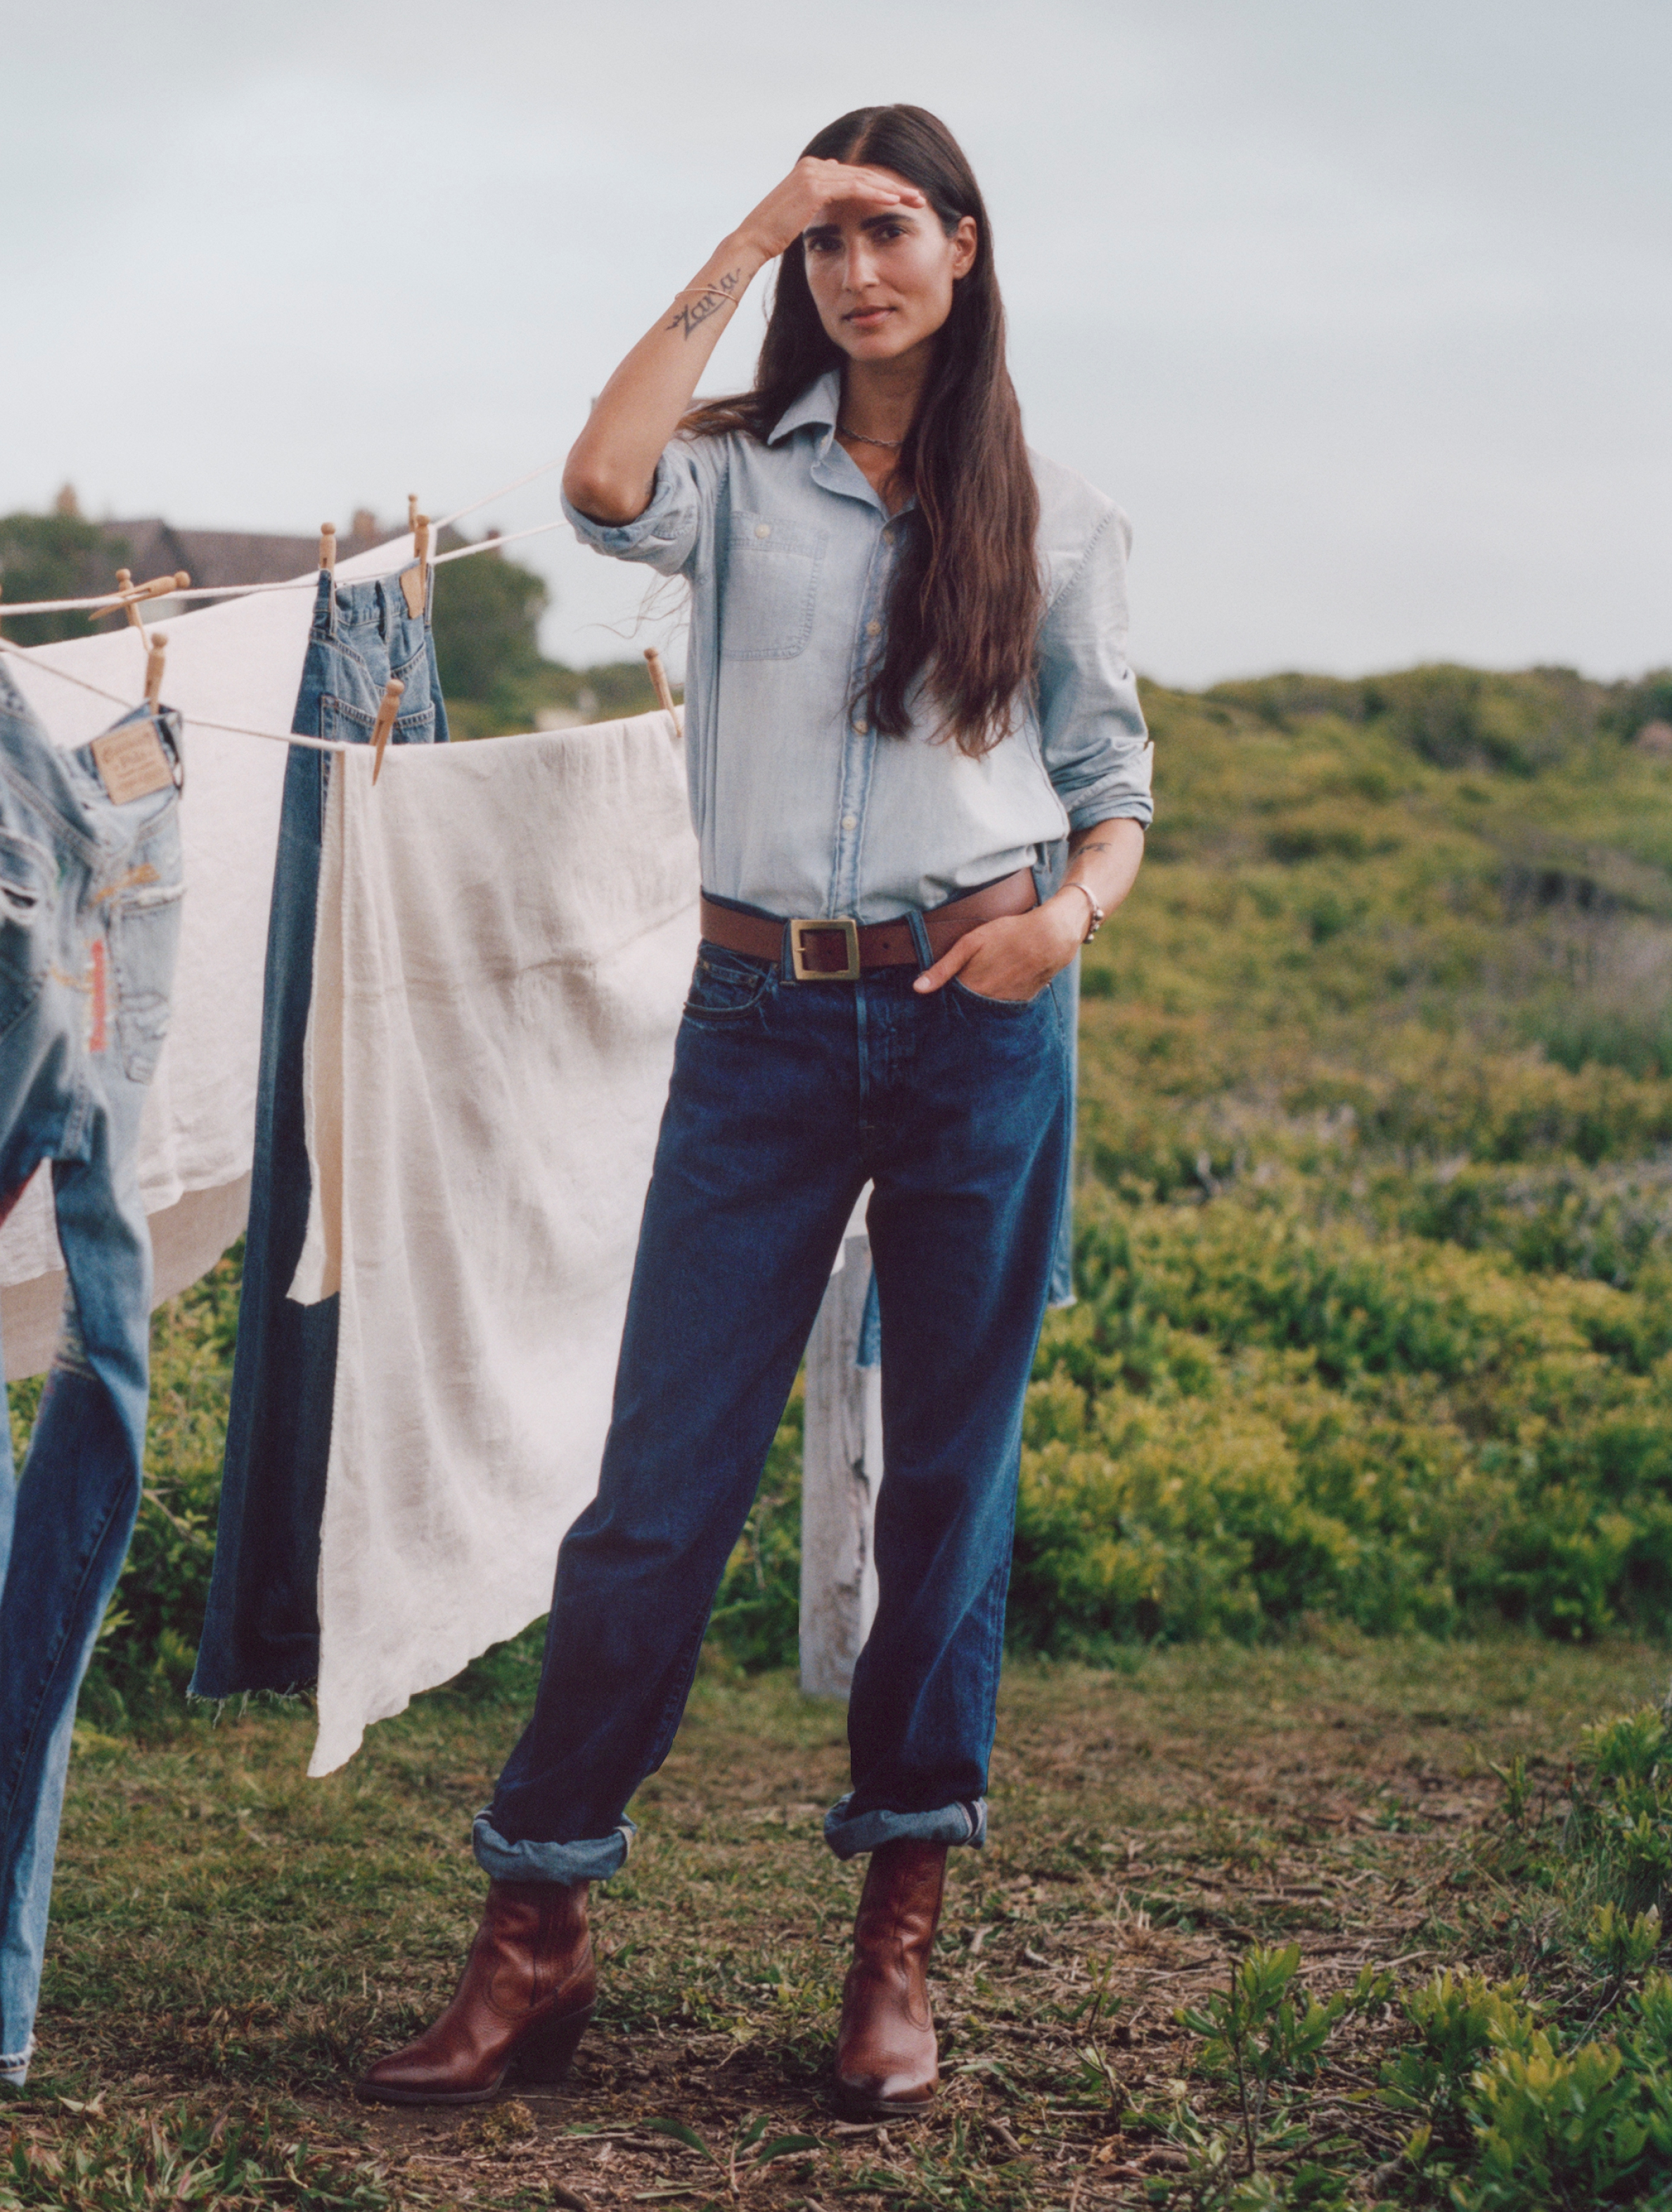 Polo Ralph Lauren Denim FW2019-20 (13).jpg